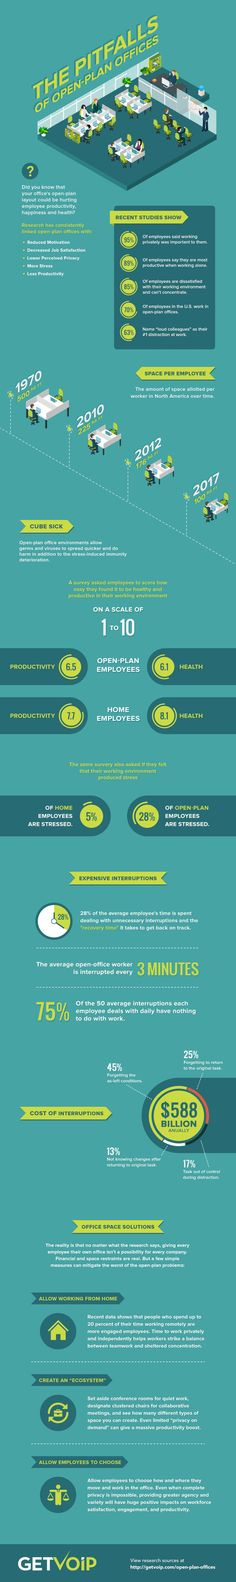 The downsides of open plan #offices #infographic